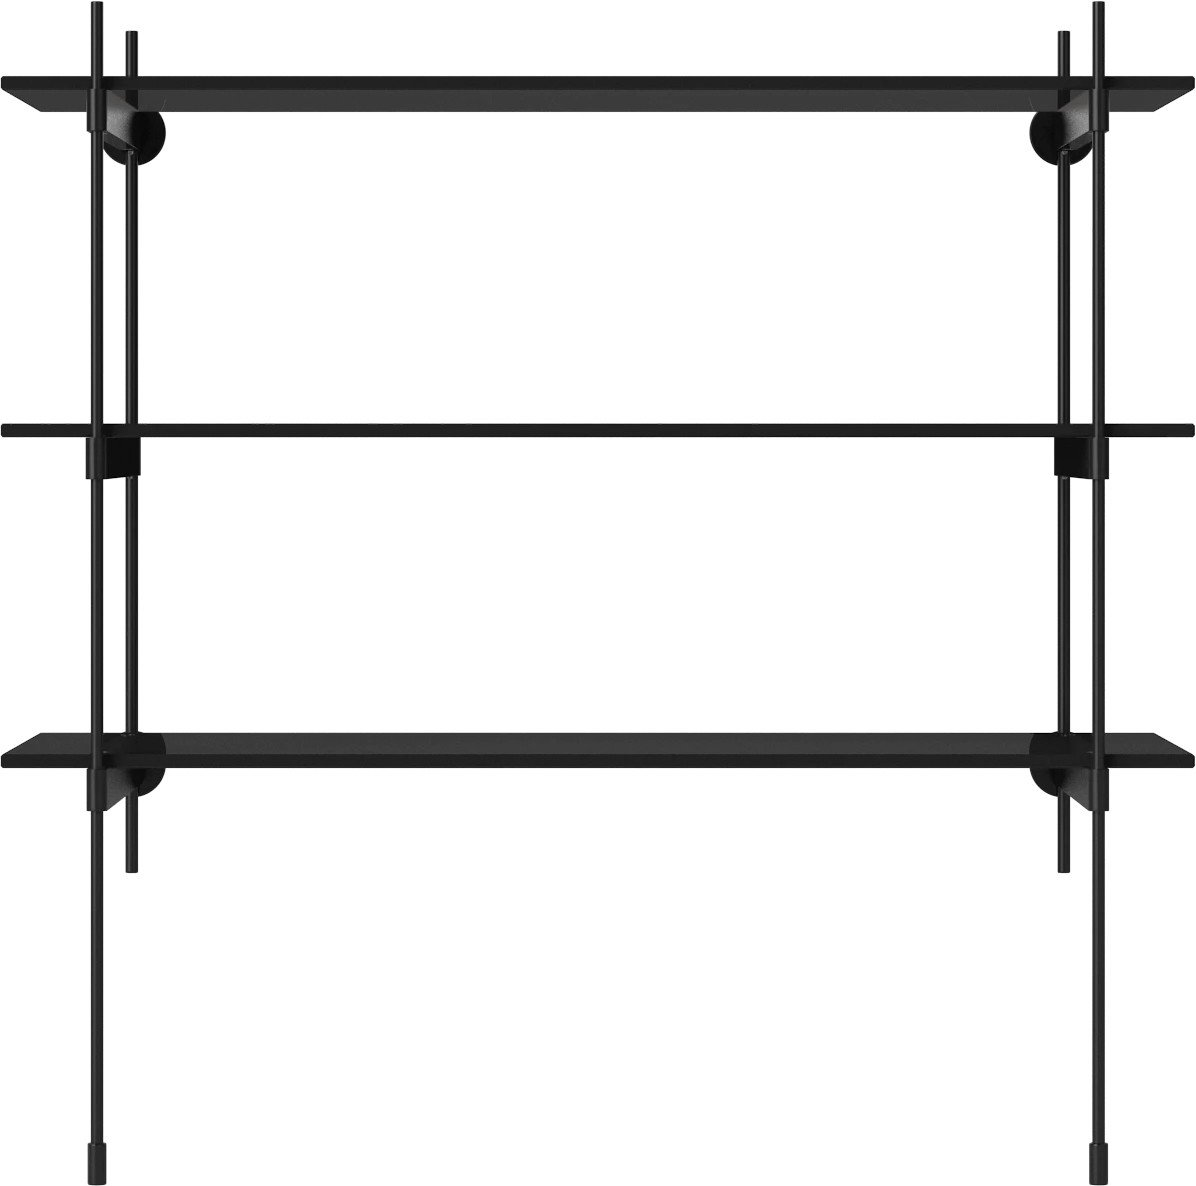 ROD Shelf Combination 14 Black Steel and Glass by Kaschkasch for Bolia - 511721 - photo